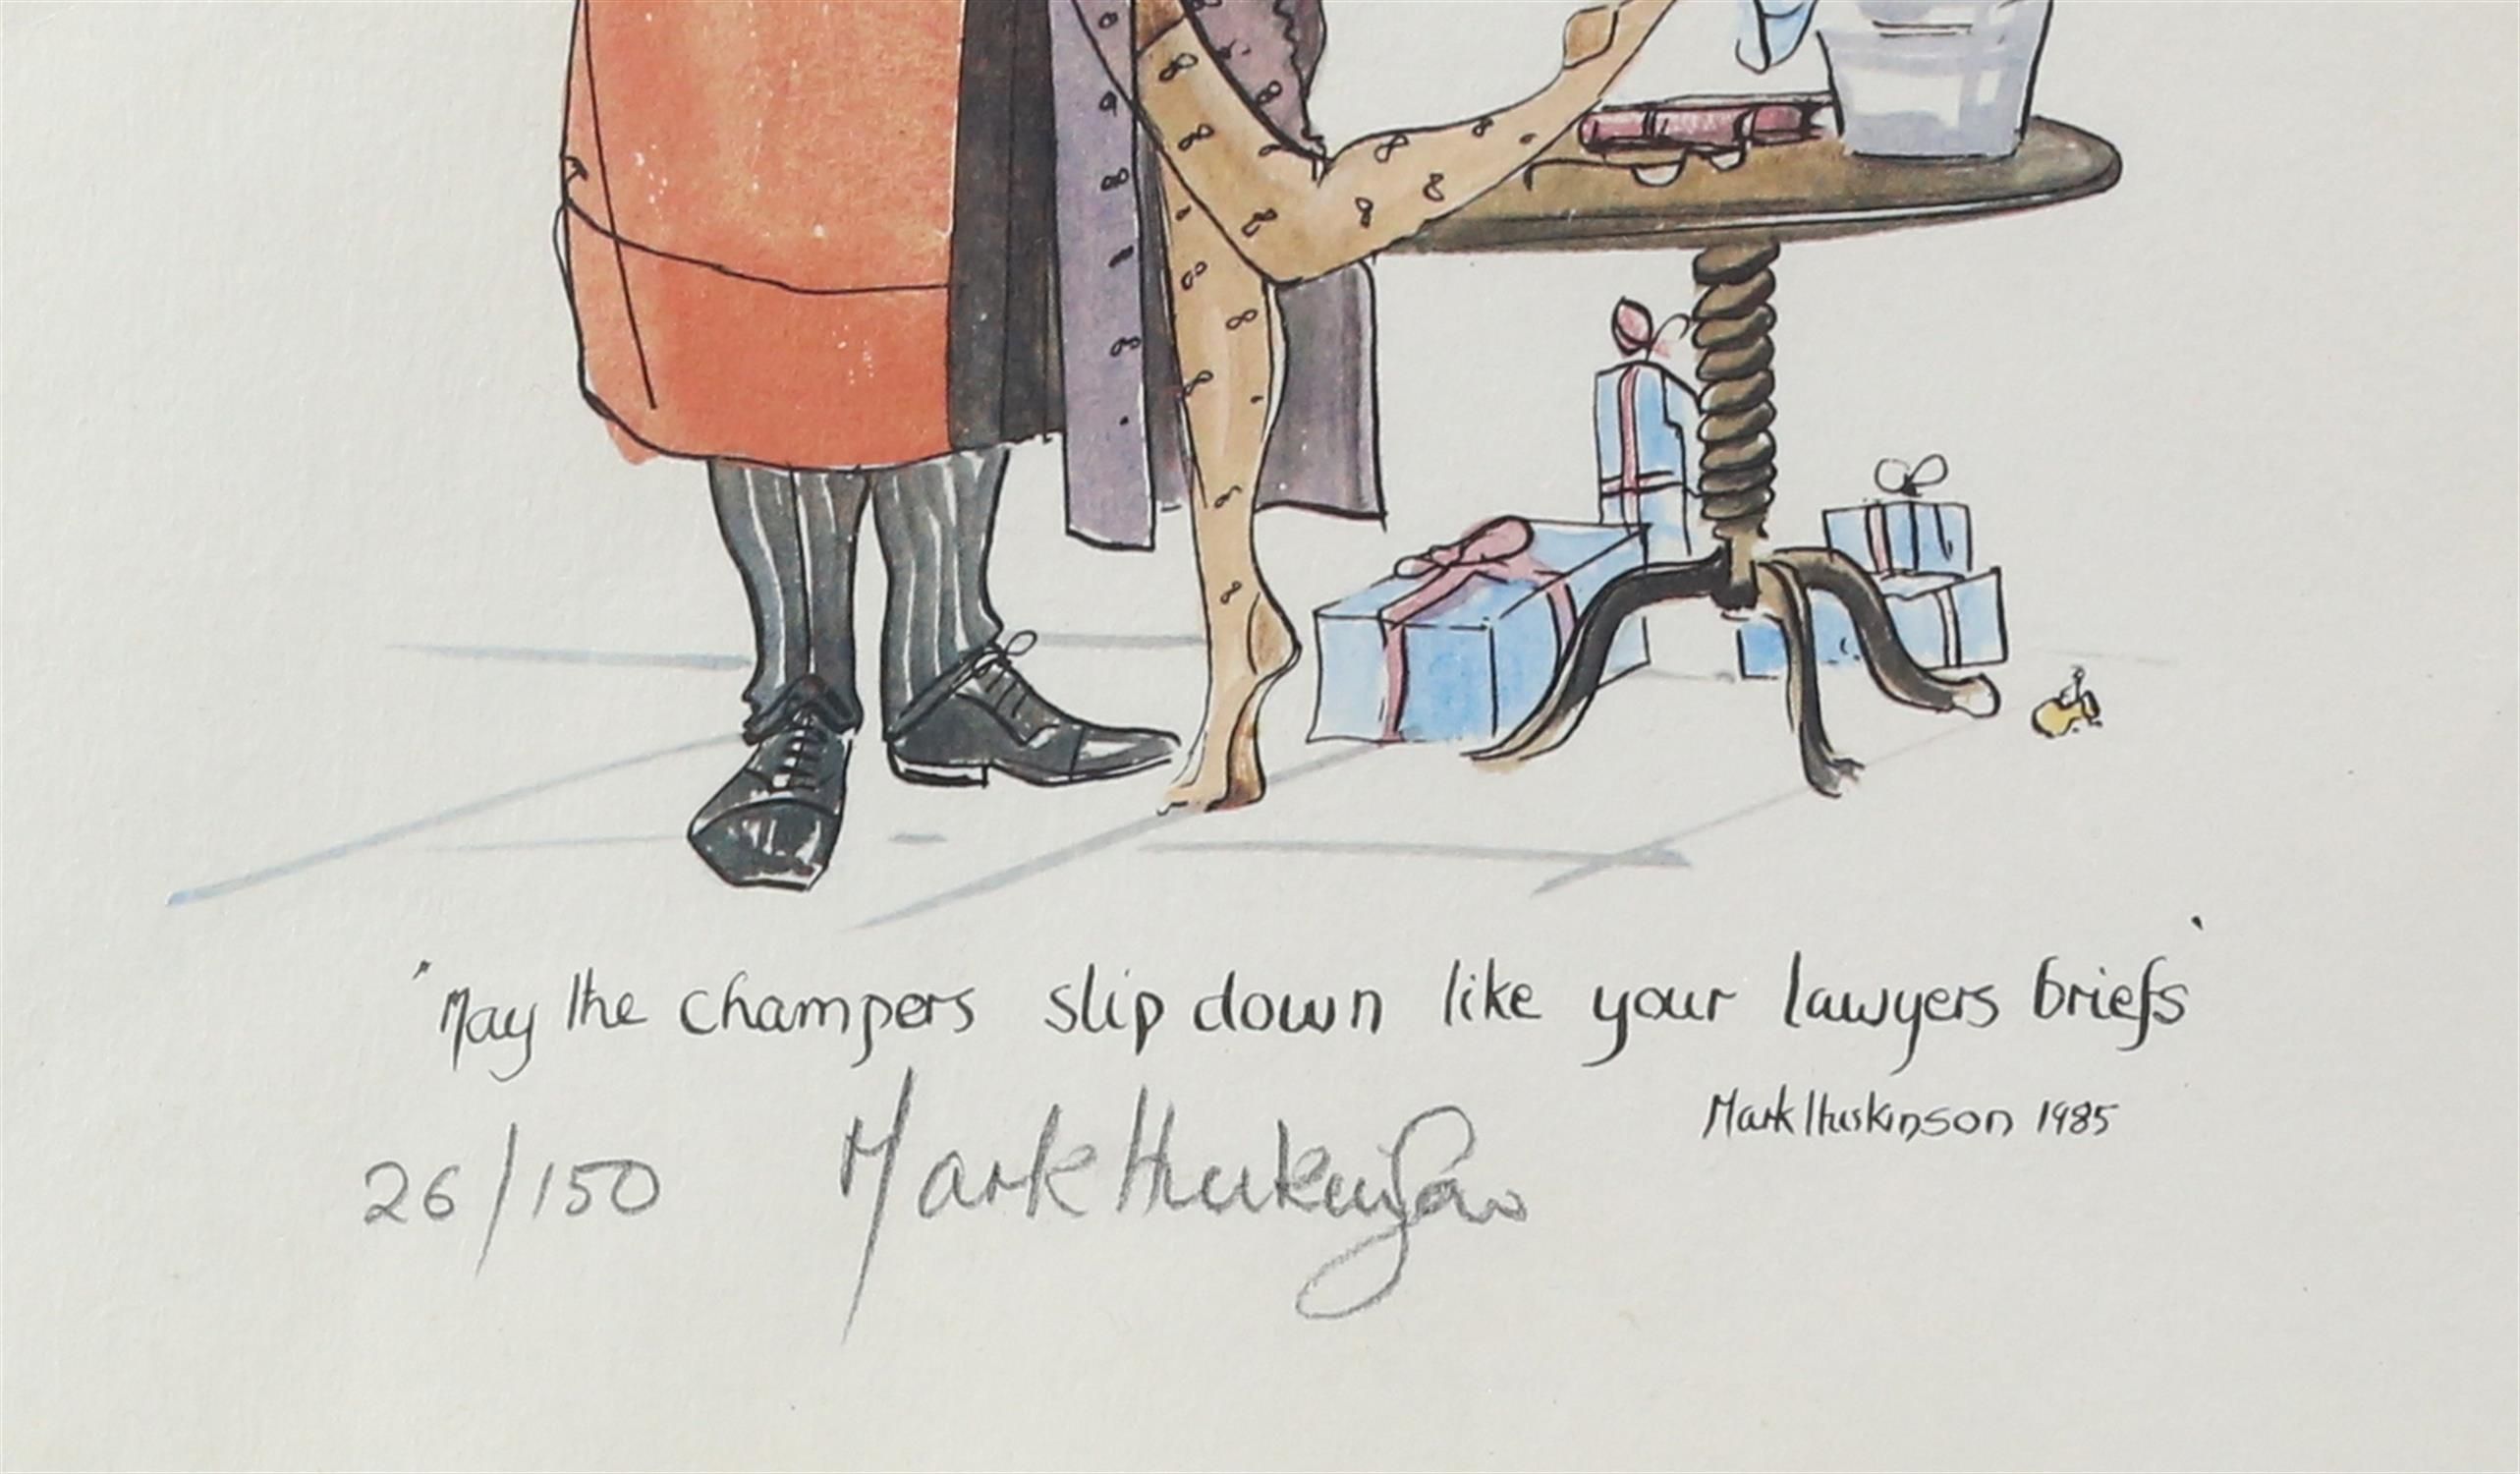 Mark Huskinson, British 1935-2018, 'May the champers slip down like your lawyers briefs', - Image 3 of 3